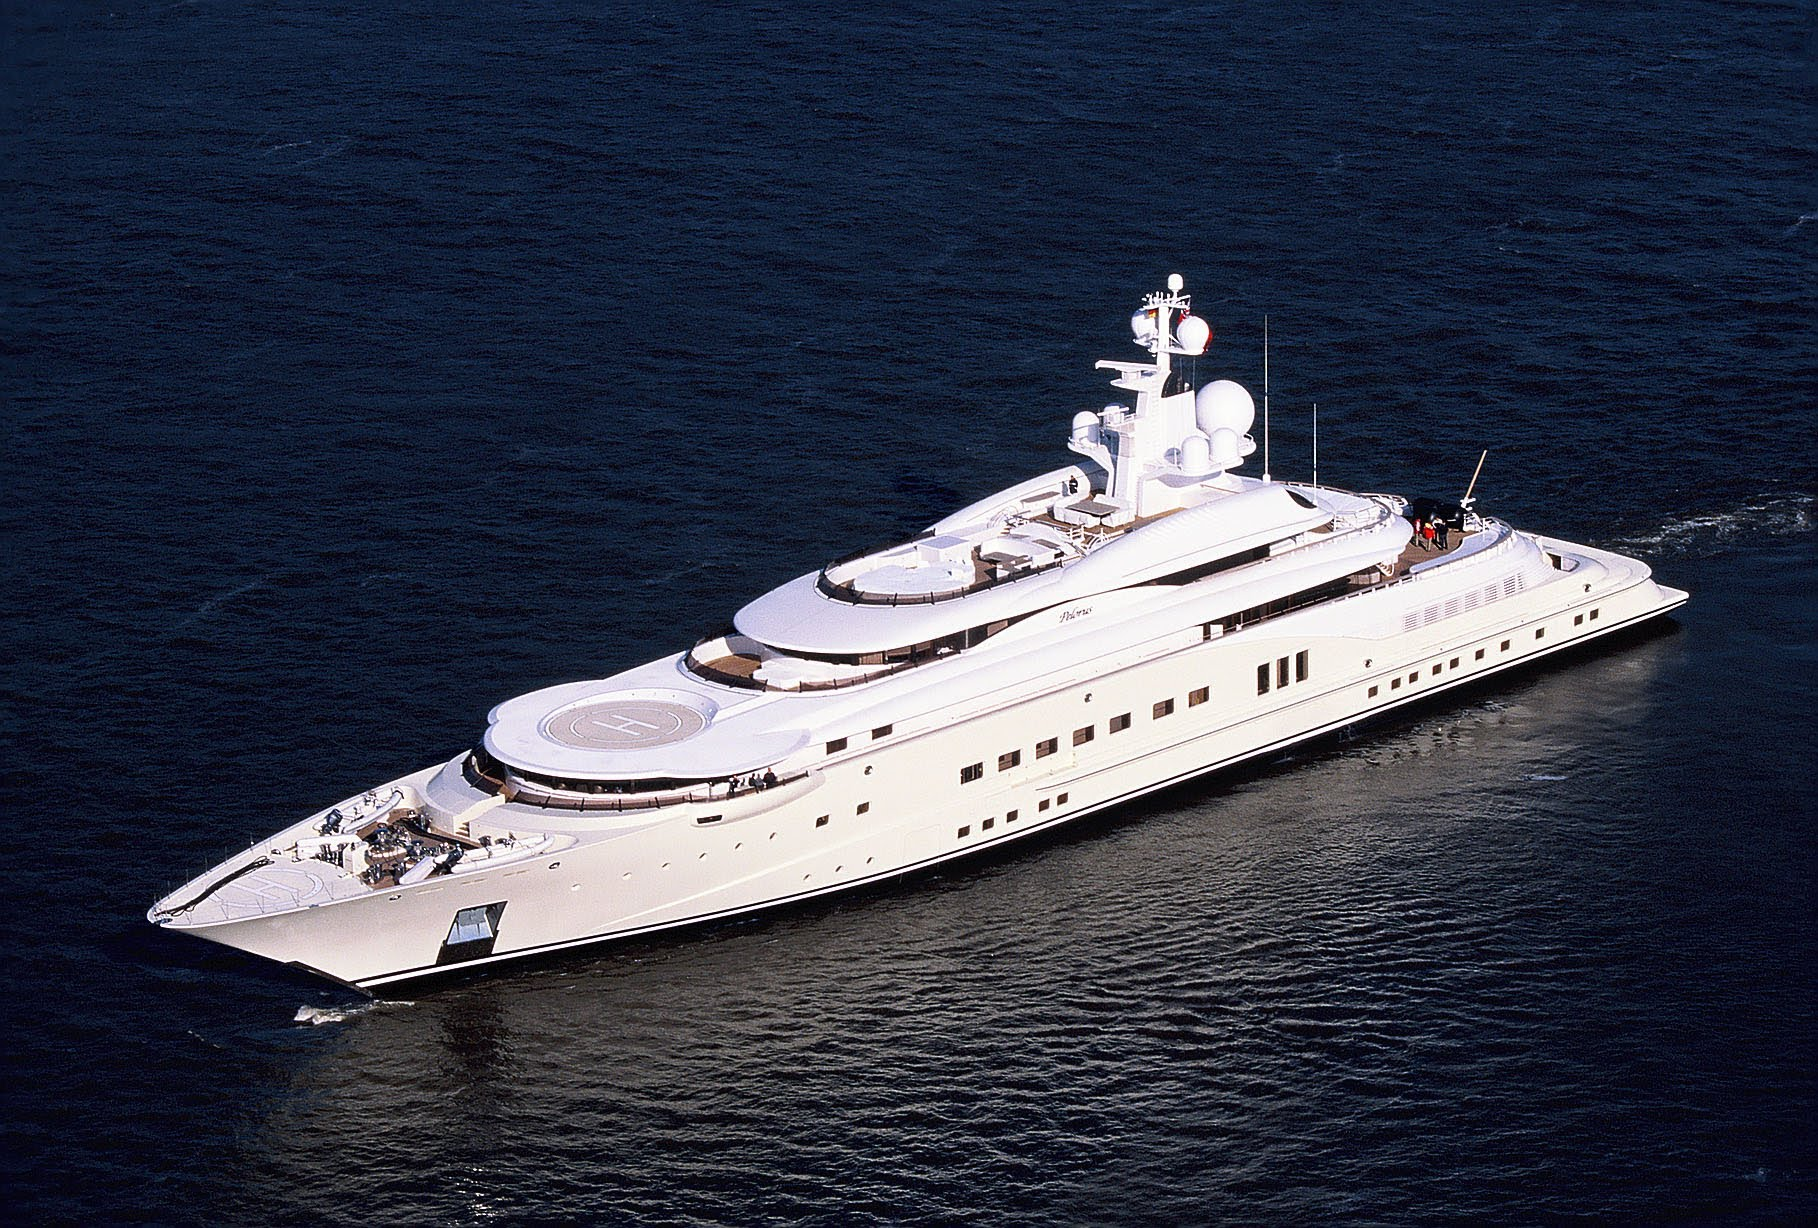 The 5 Most Expensive Luxury Yachts in The World fort lauderdale international boat show 2019 Fort Lauderdale International Boat Show 2019 –  Best Yachts the 5 most expensive luxury yachts in the world eclipse hd fort lauderdale international boat show 2019 Fort Lauderdale International Boat Show 2019 –  Best Yachts the 5 most expensive luxury yachts in the world eclipse hd